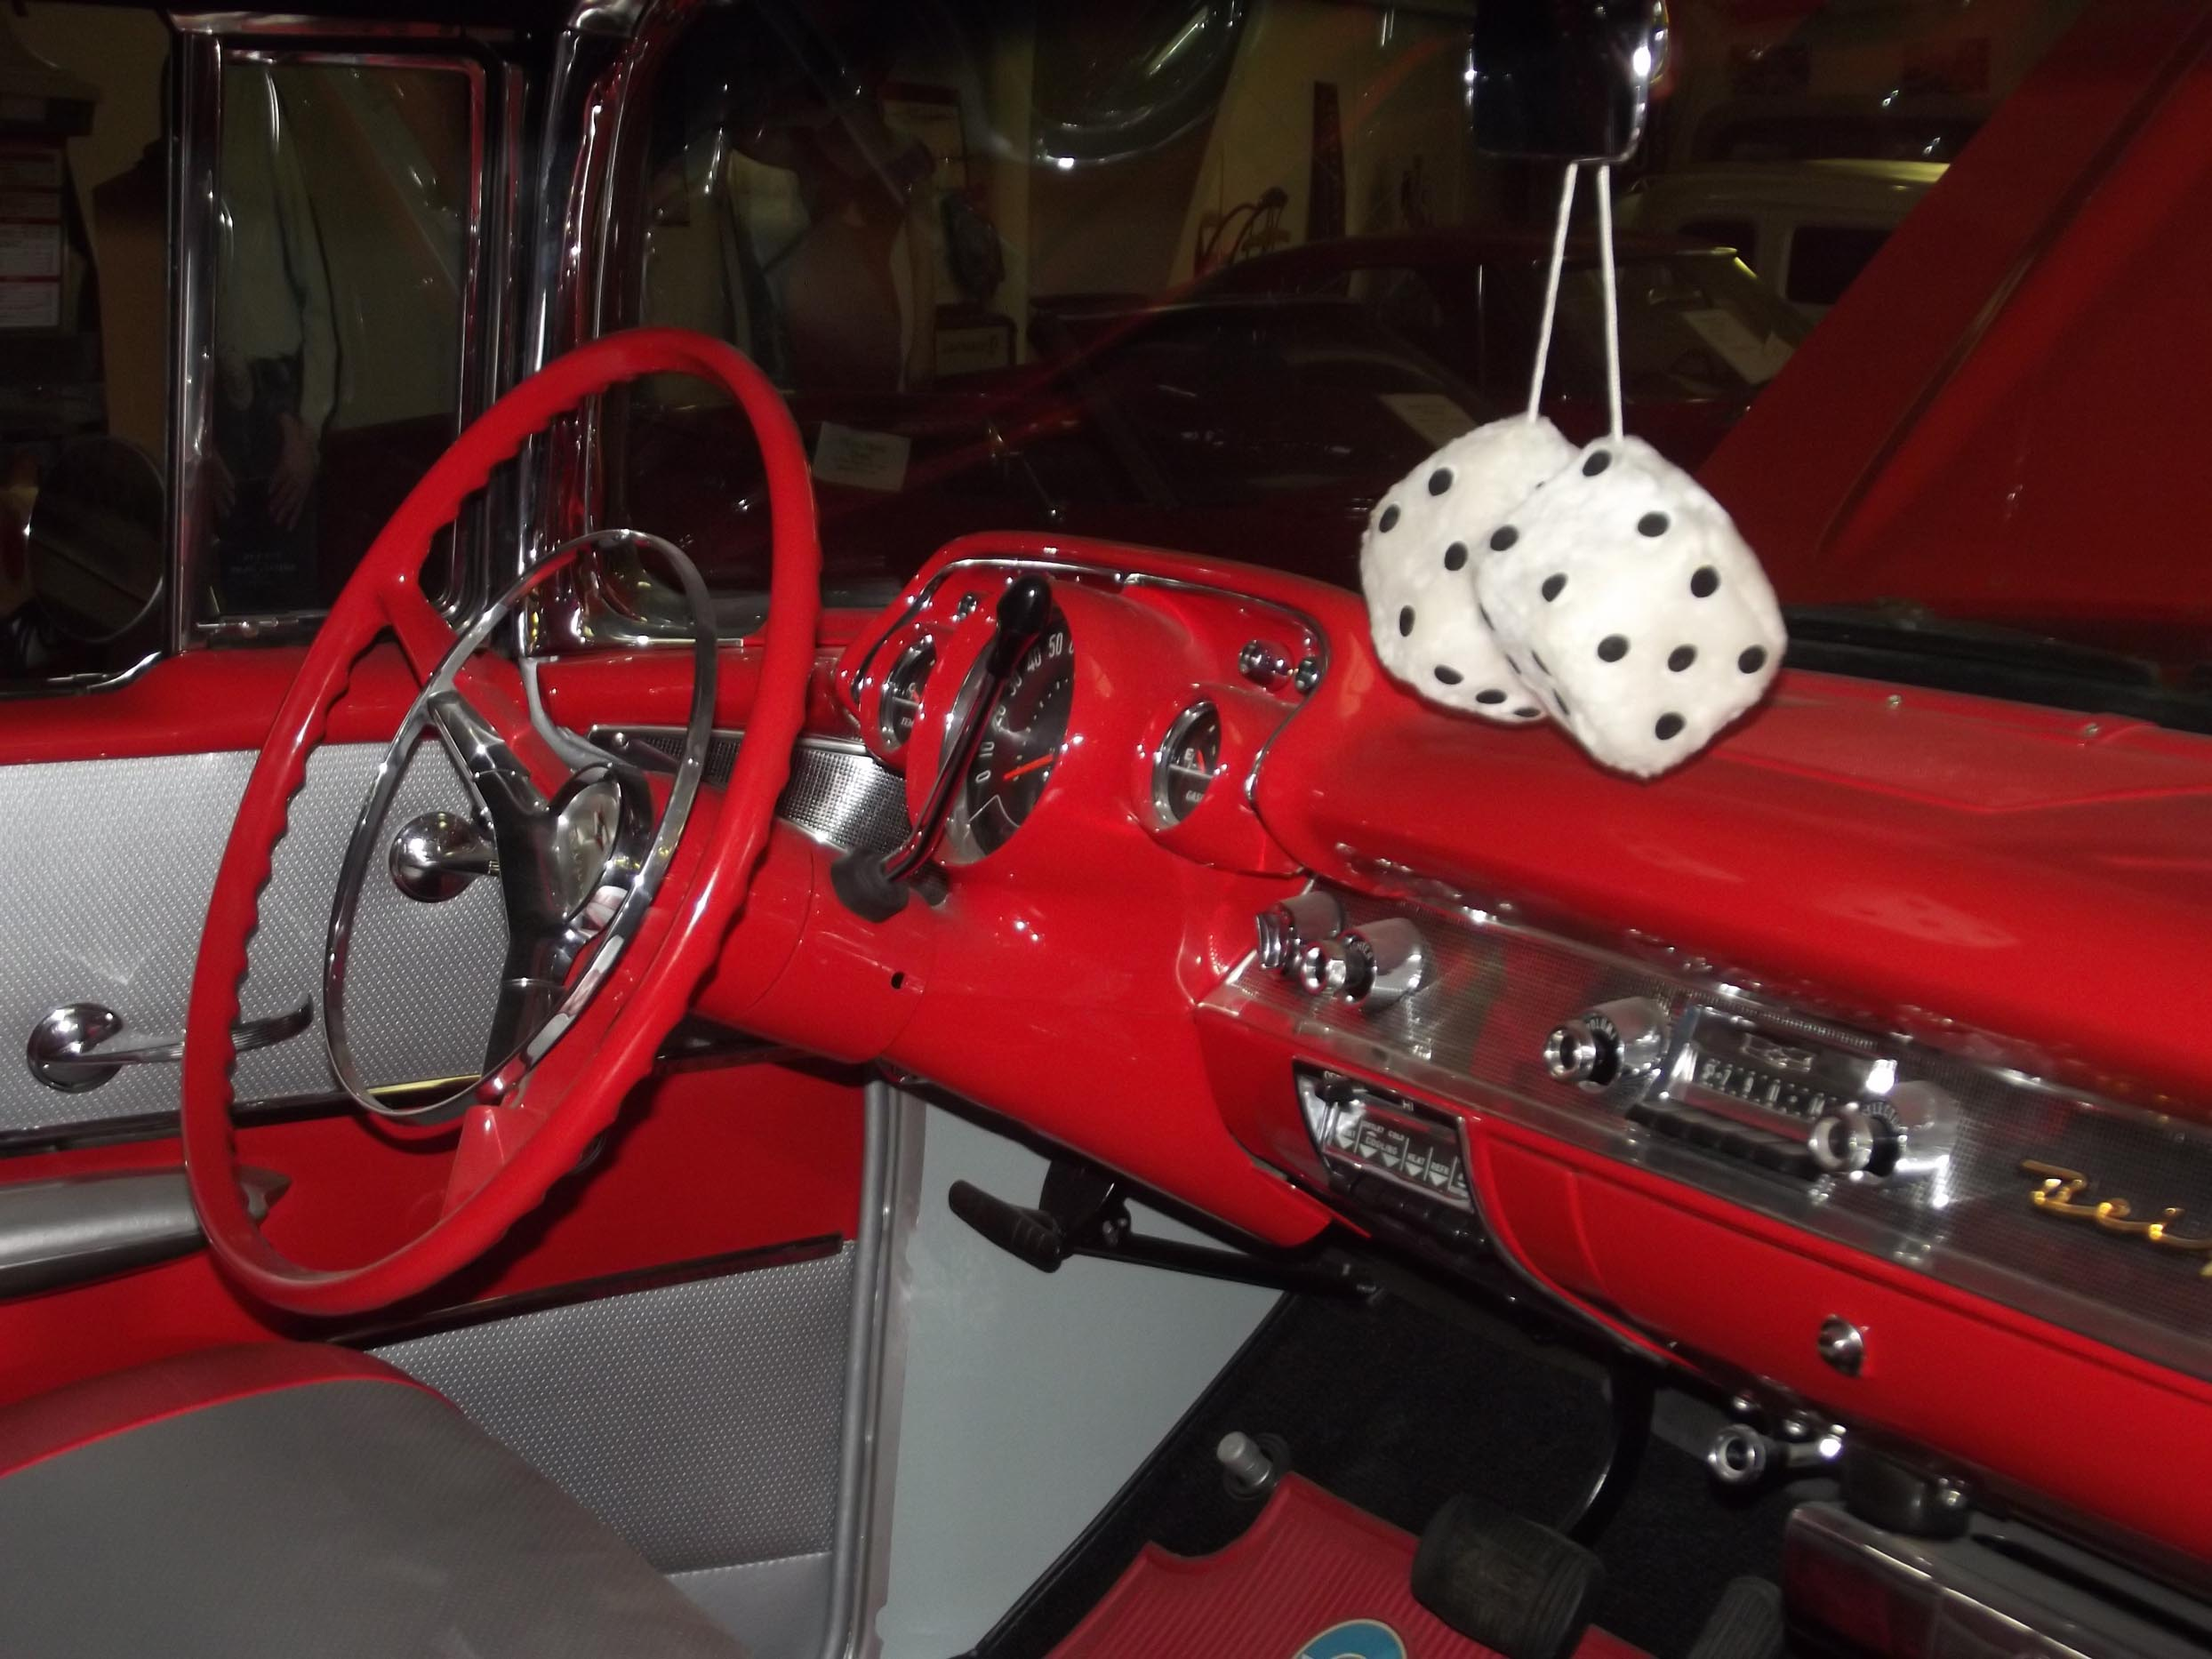 Inside a car with red dashboard and steering wheel